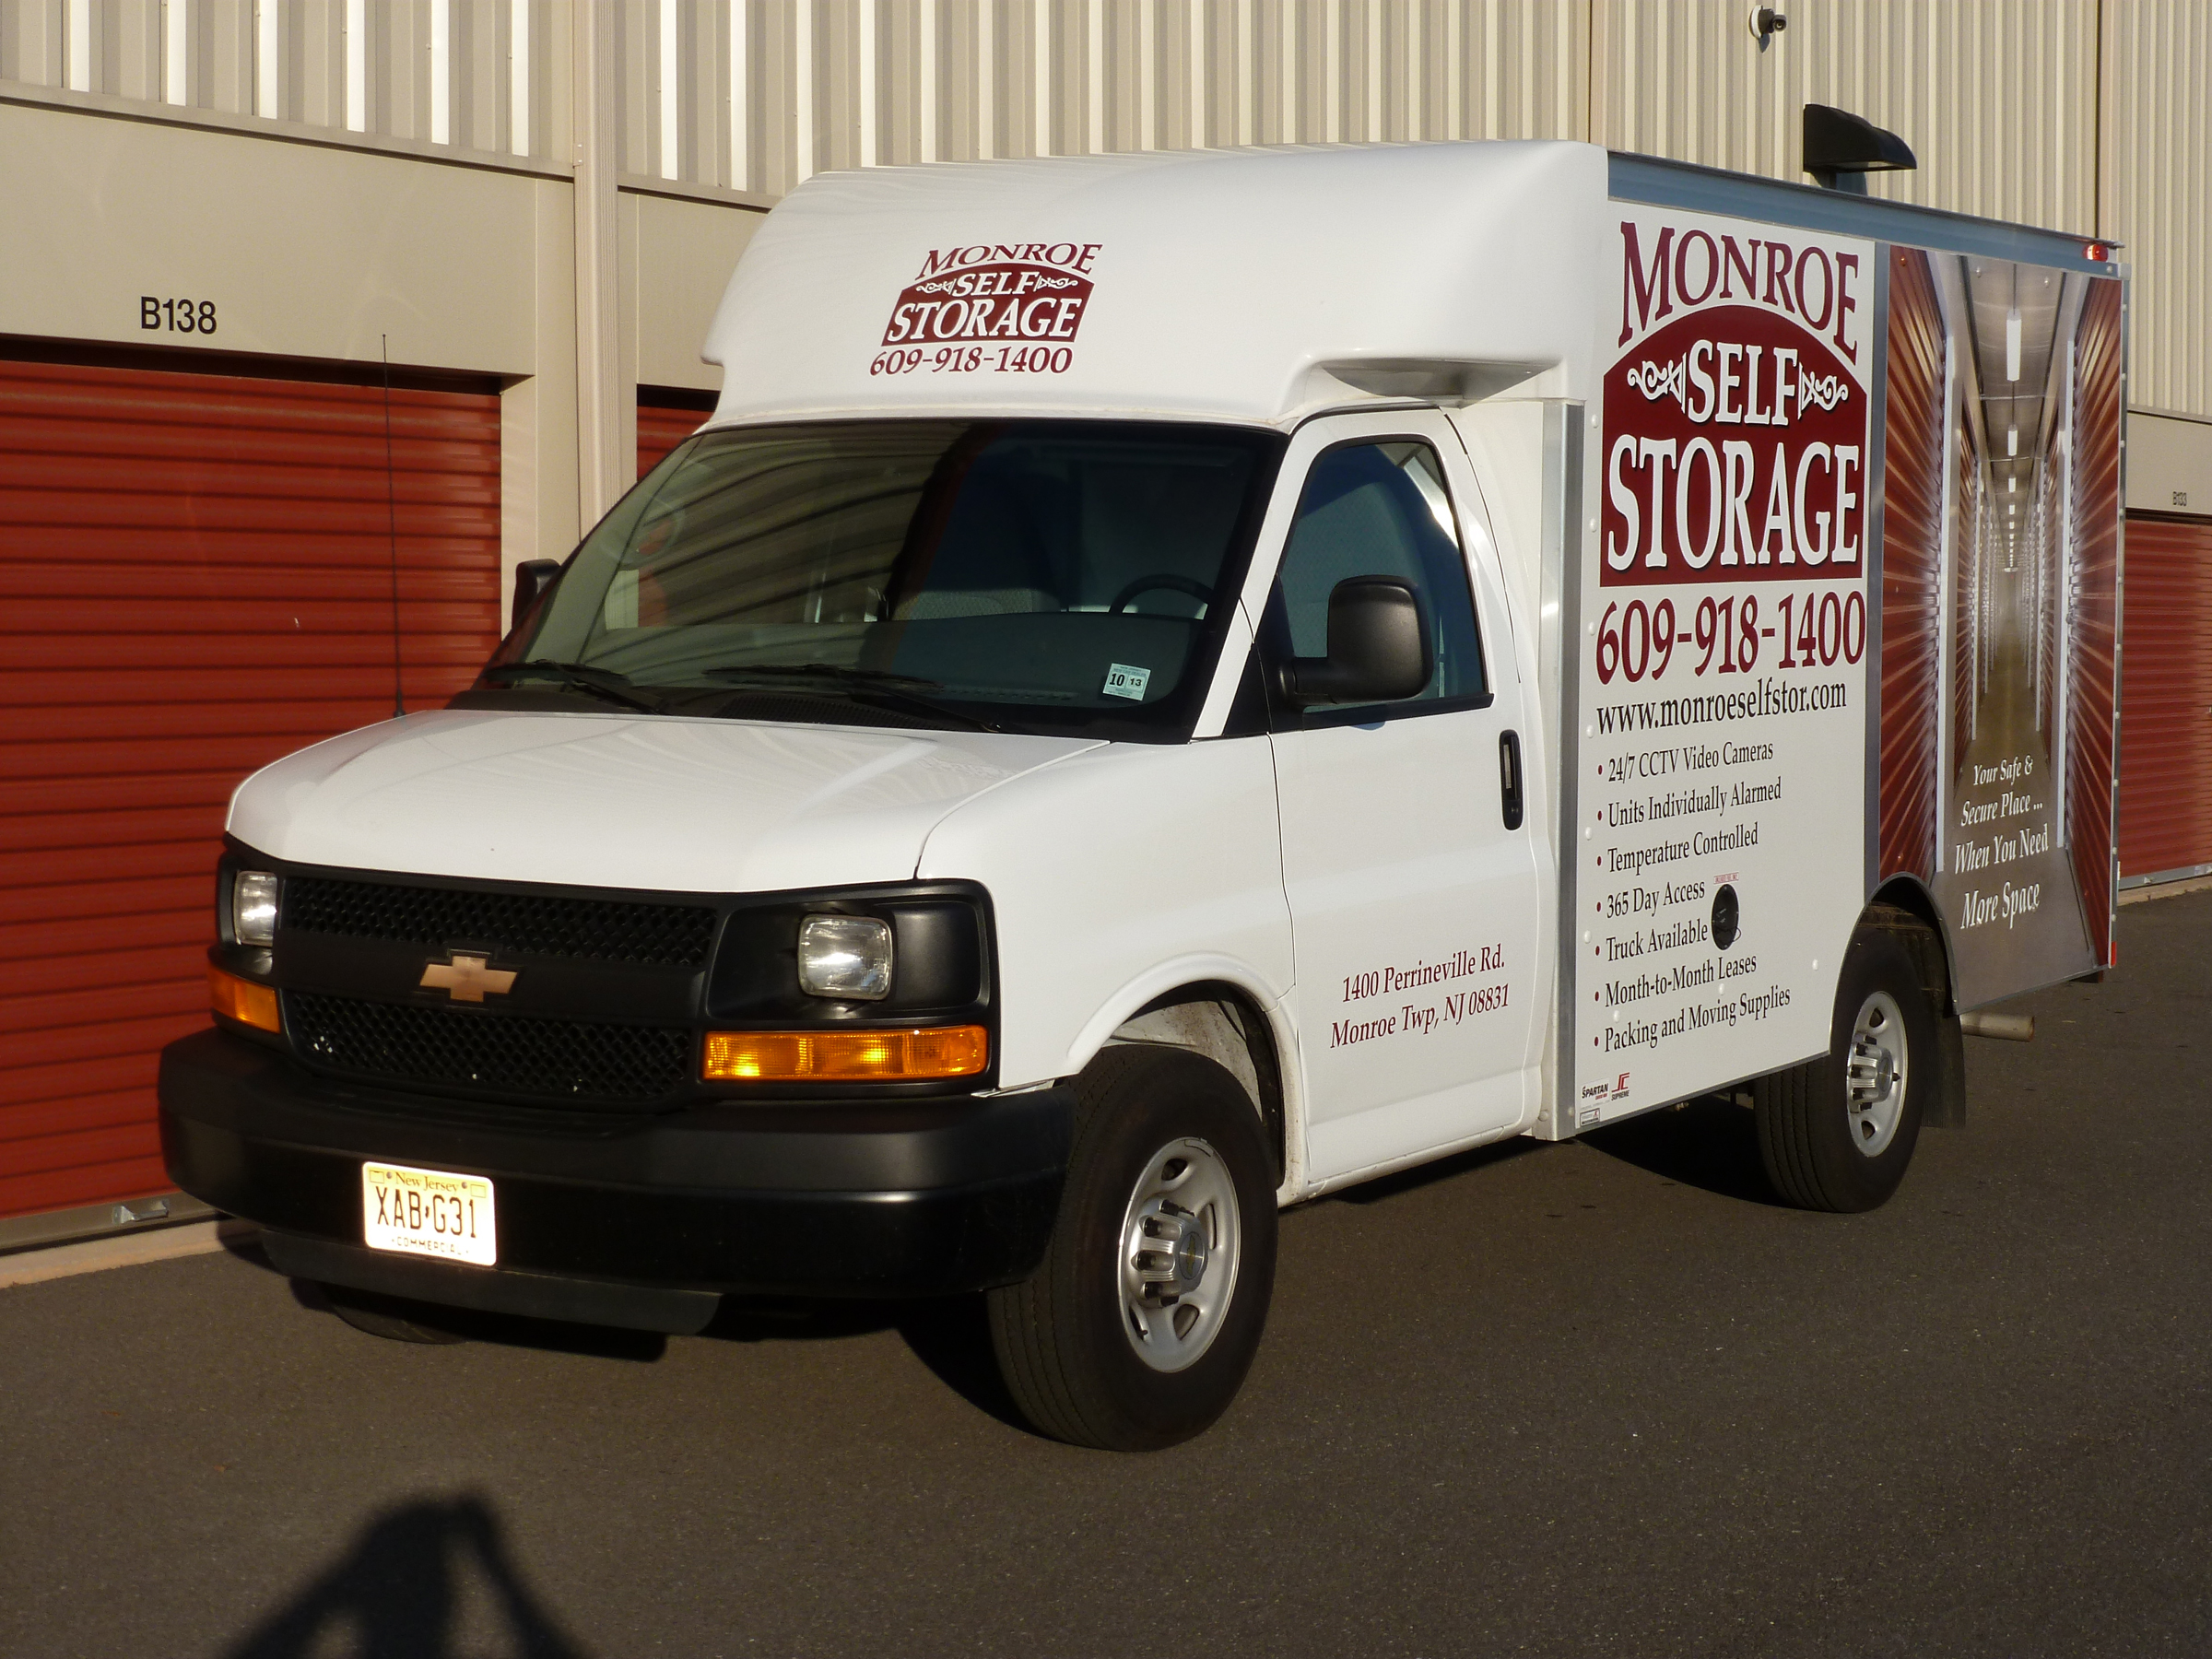 Moving truck available at Monroe Self Storage in Monroe Township, NJ